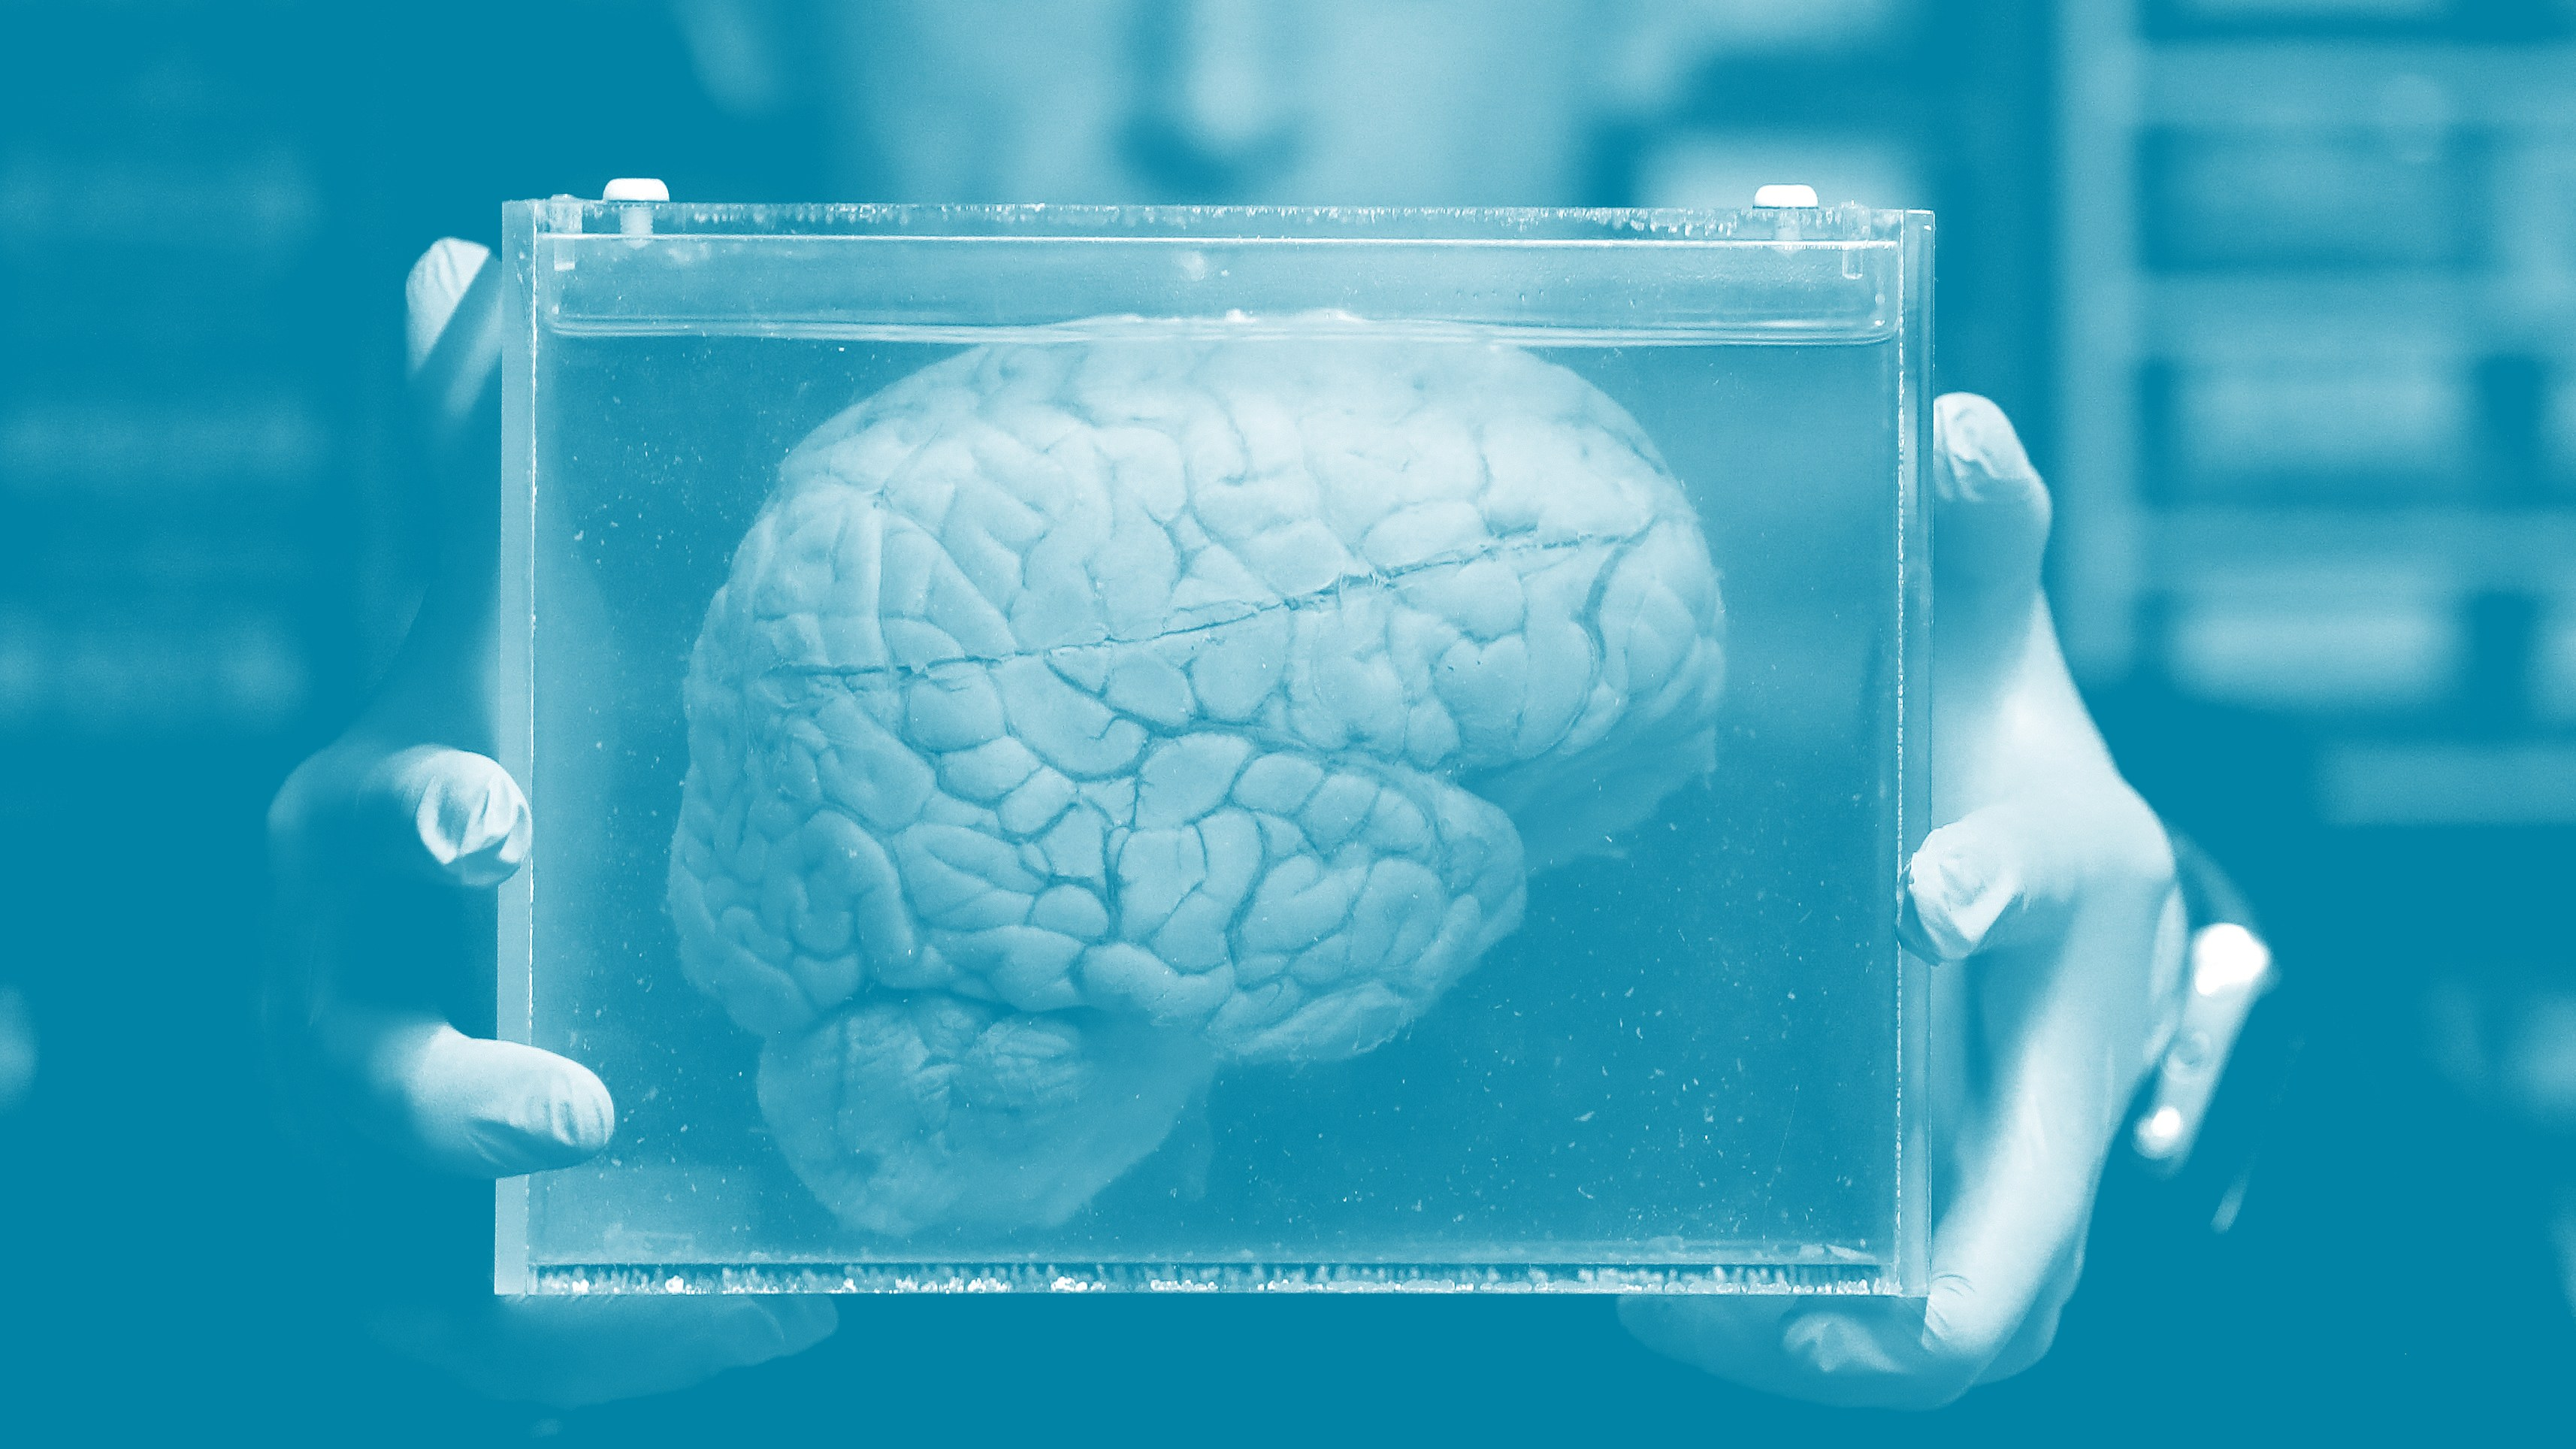 Changes in the brain make the corporate executive give away money